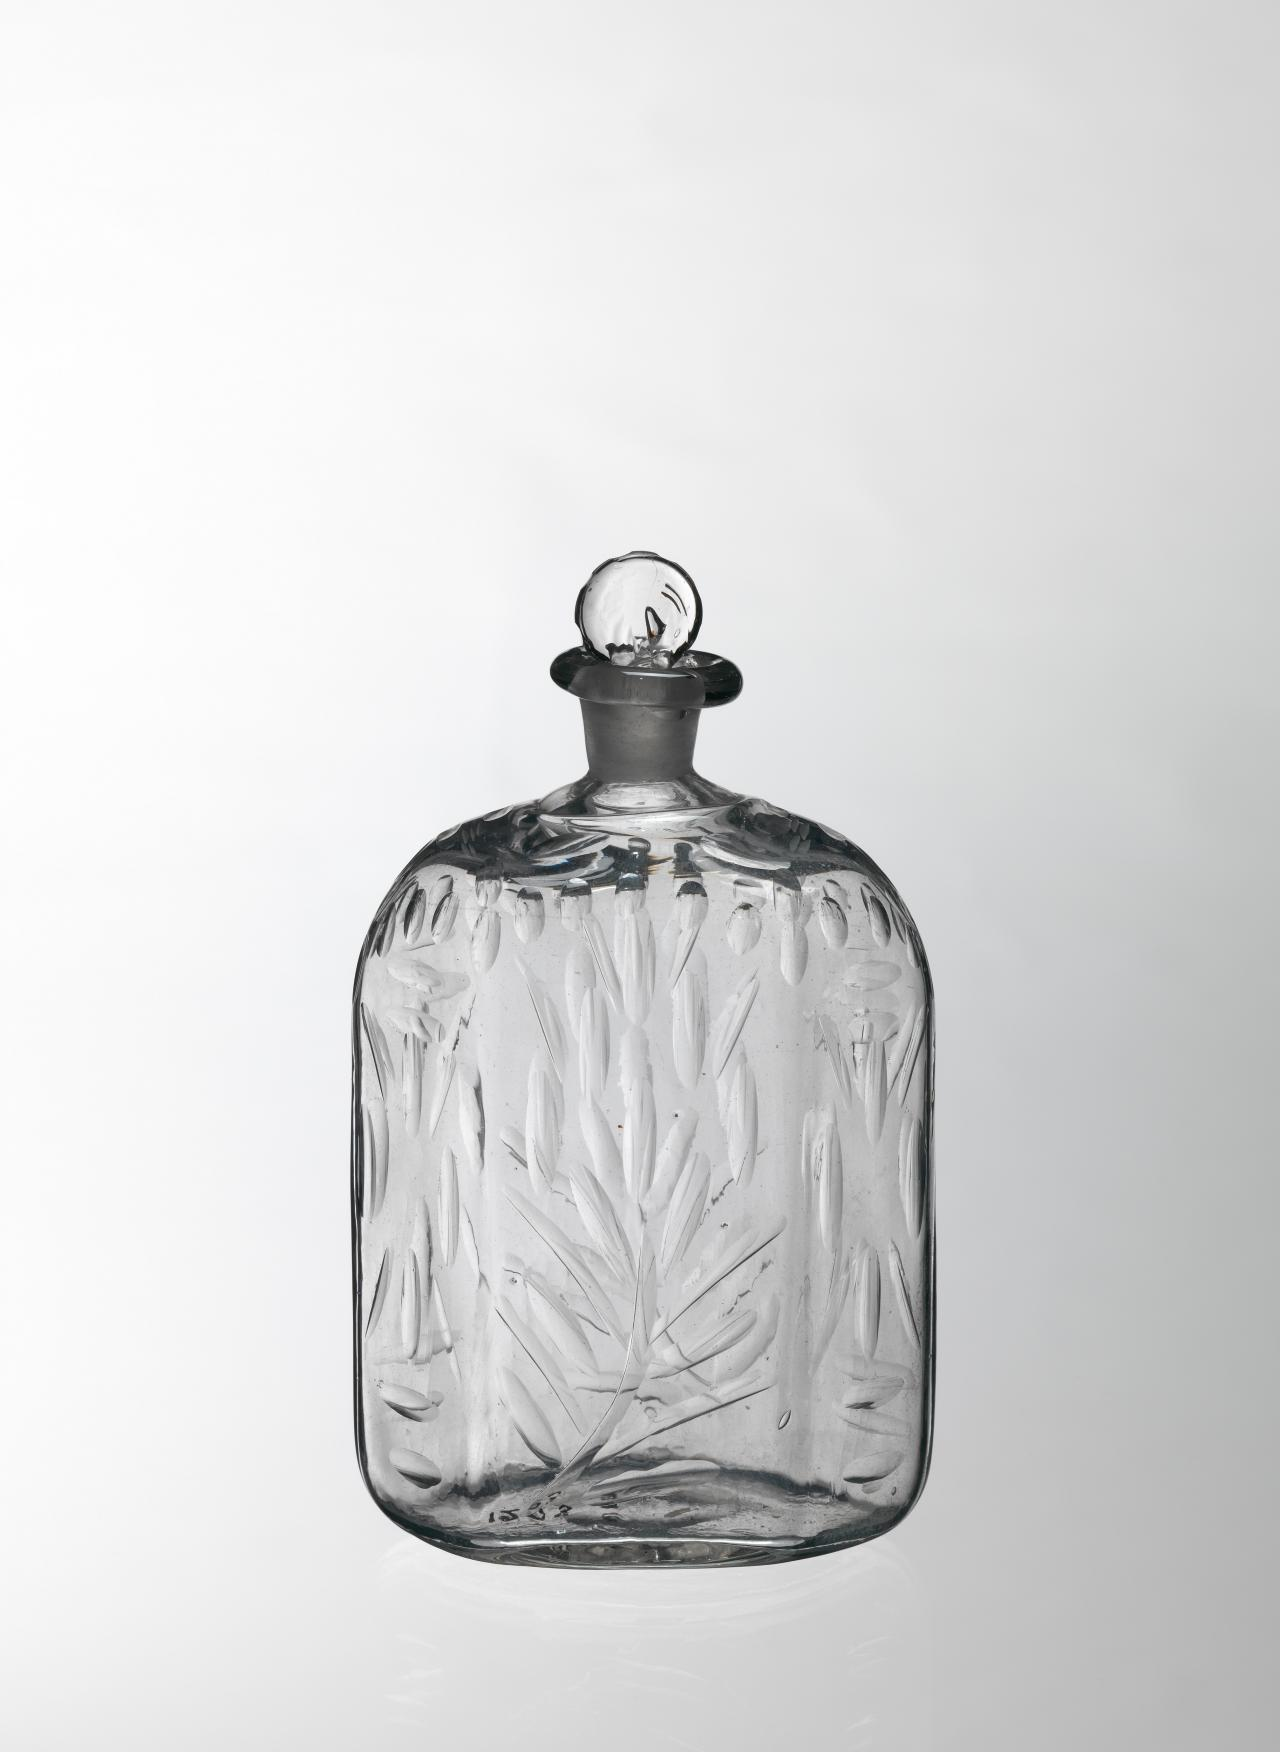 Flat hexagonal bottle